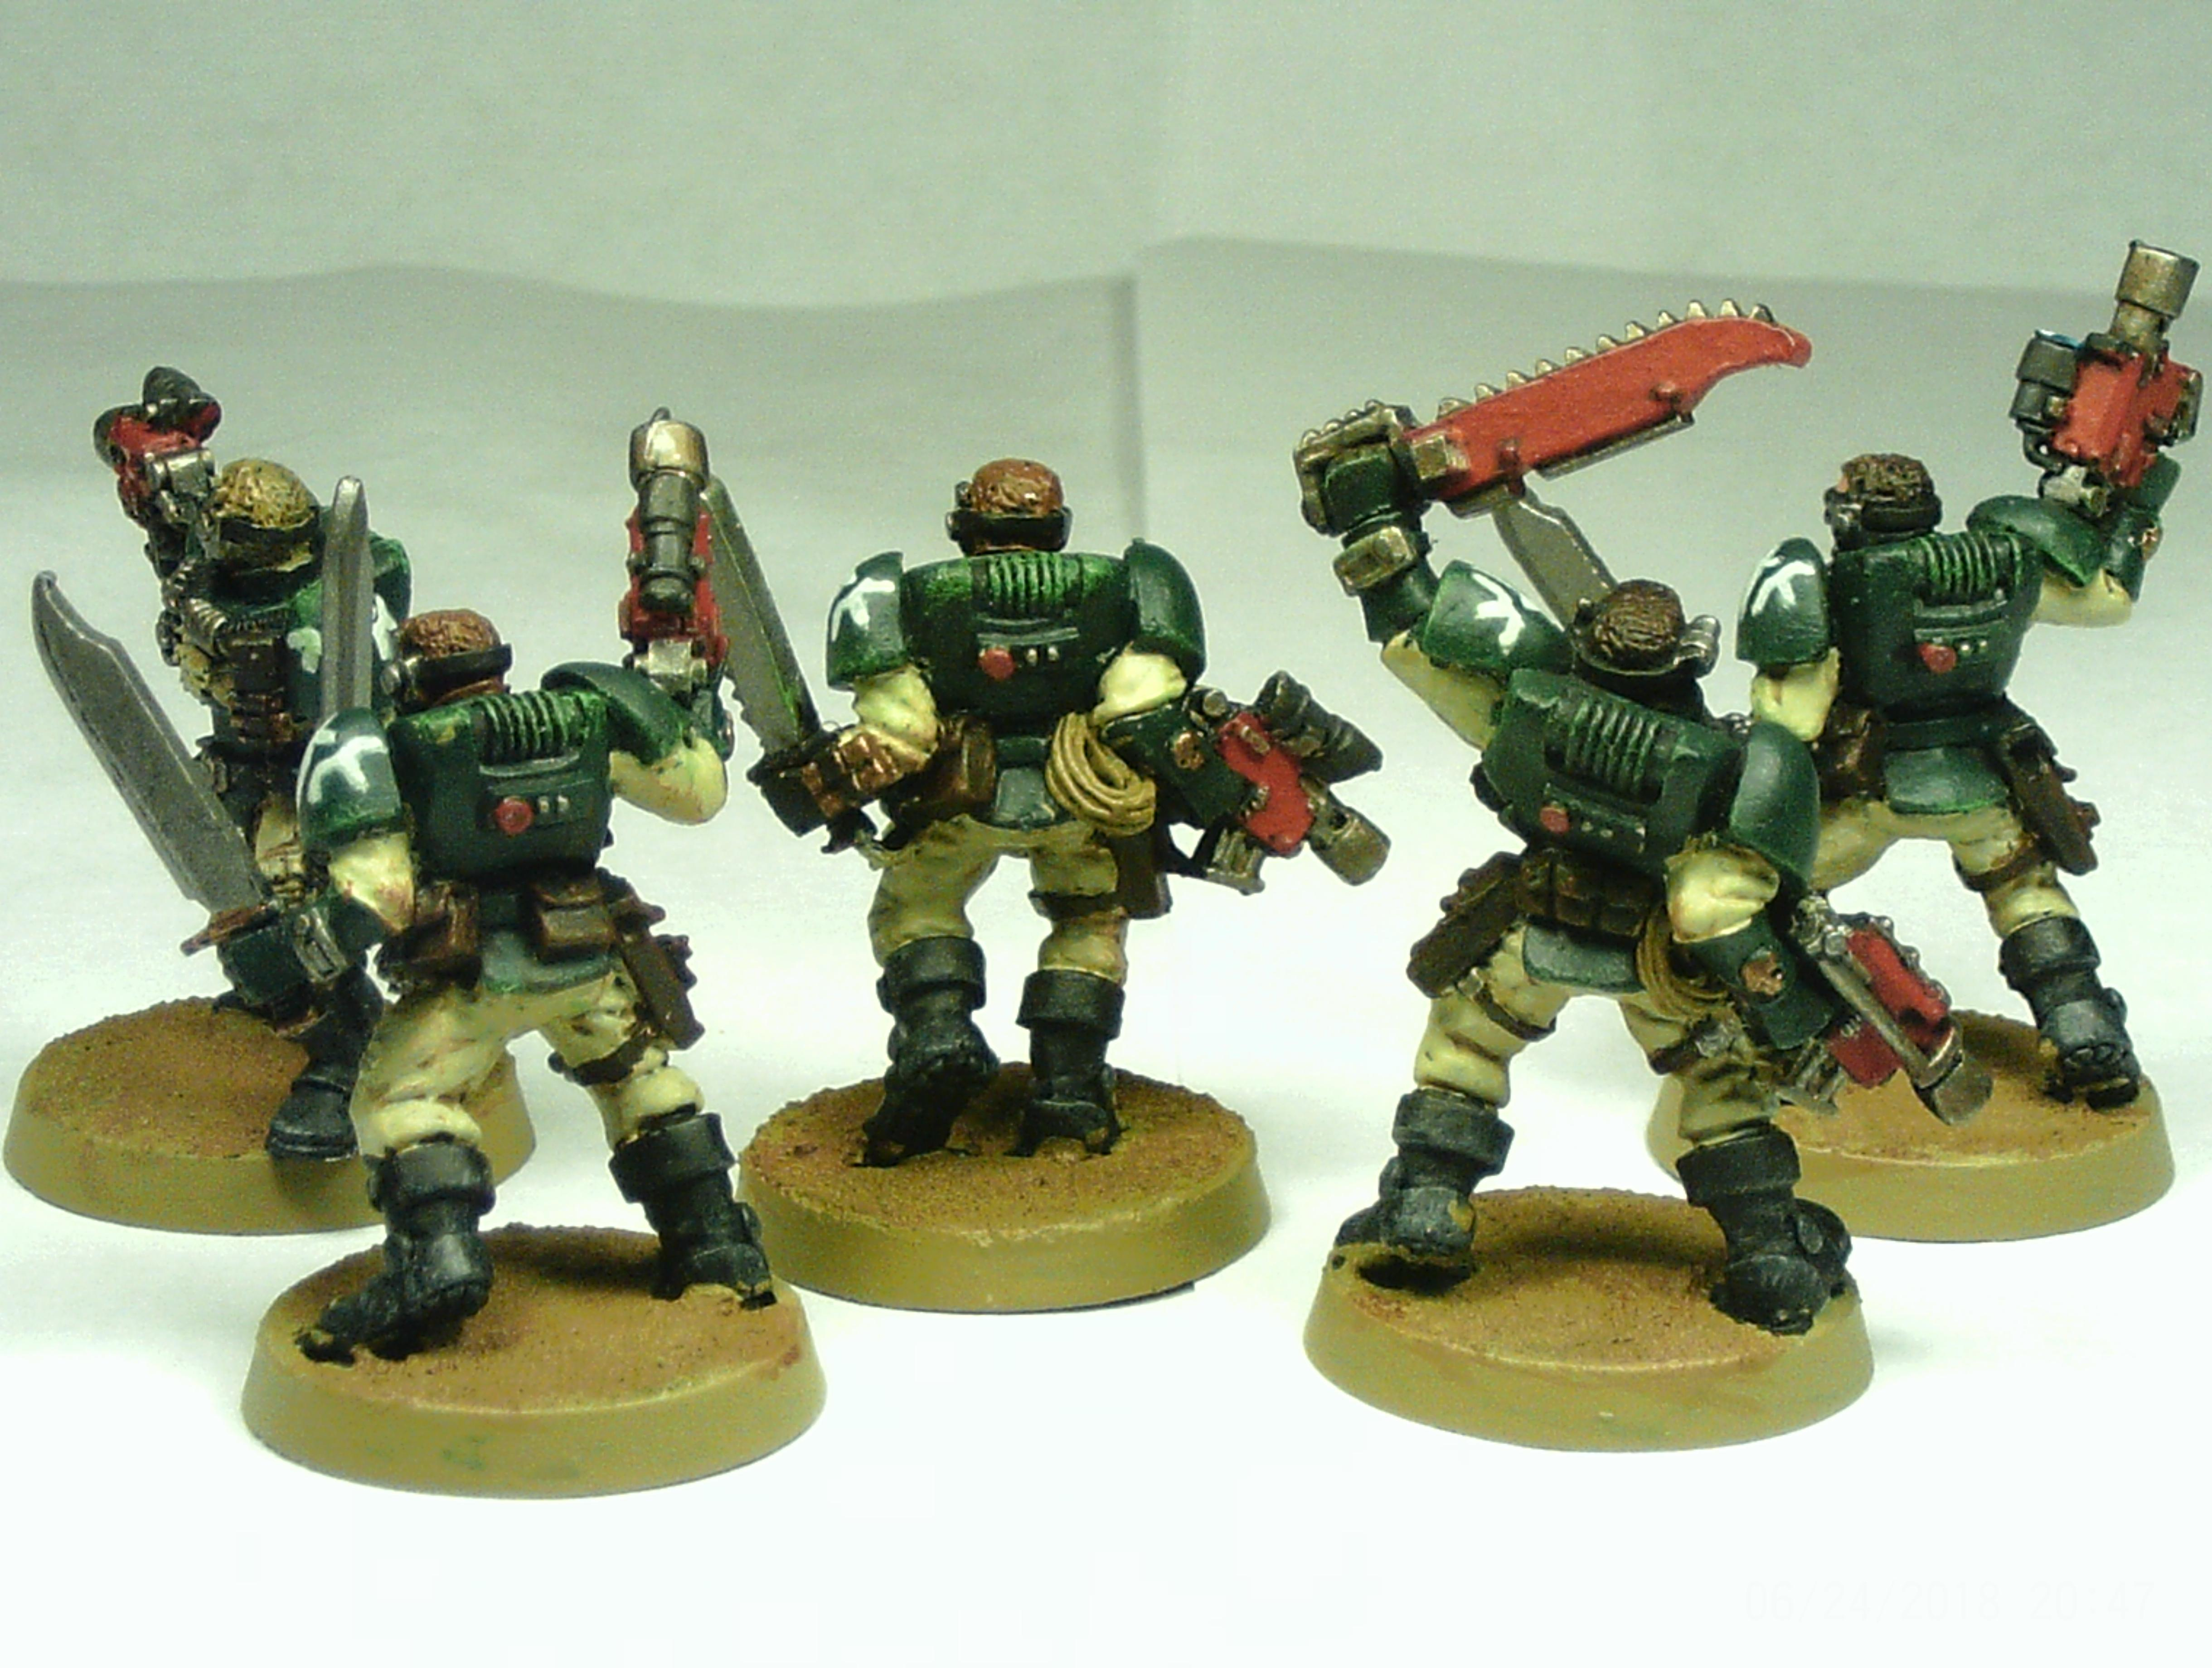 Angel, Bolter, Camouflage, Dark, Infiltrator, Neophytes, Recruits, Scouts, Snipers, Space, Space Marines, Stealth